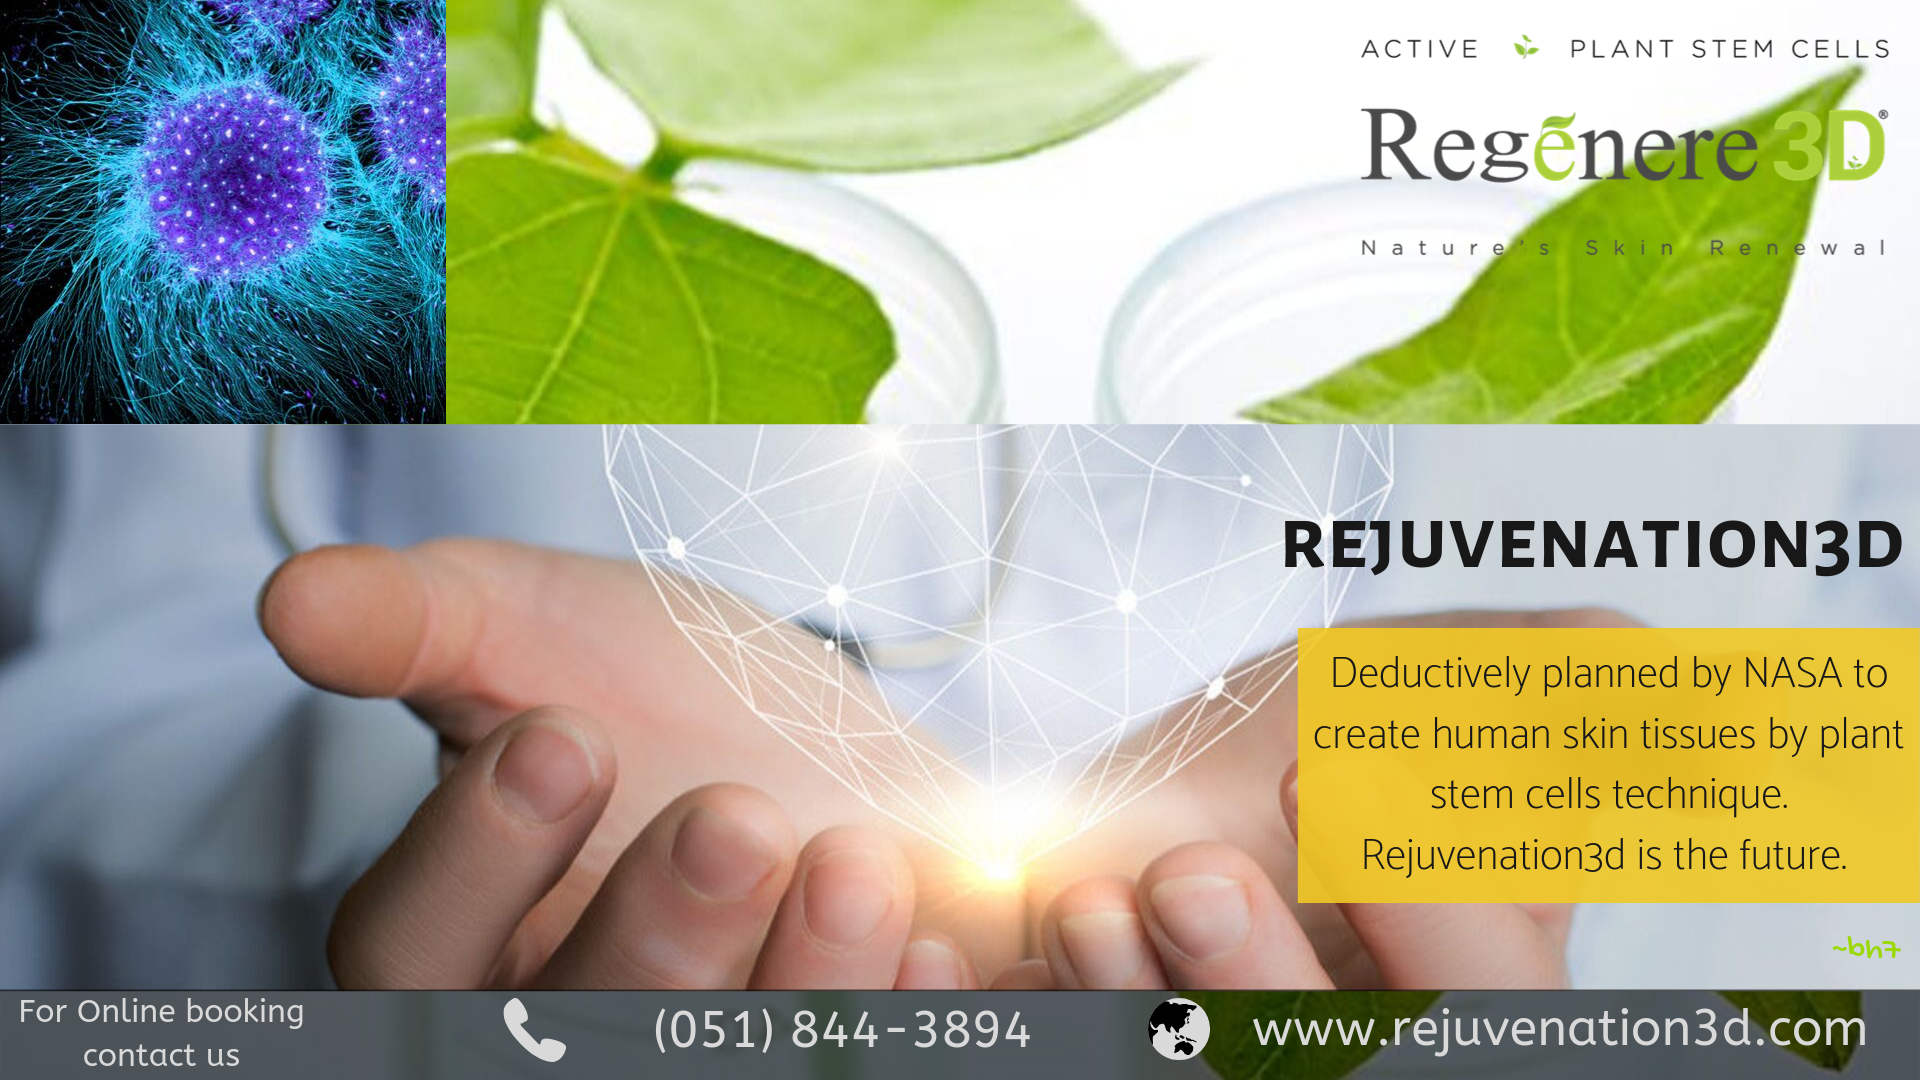 Plant Based Skincare Product In Pakistan Plant Based Skincare Skin Tissue Plant Stem Cell